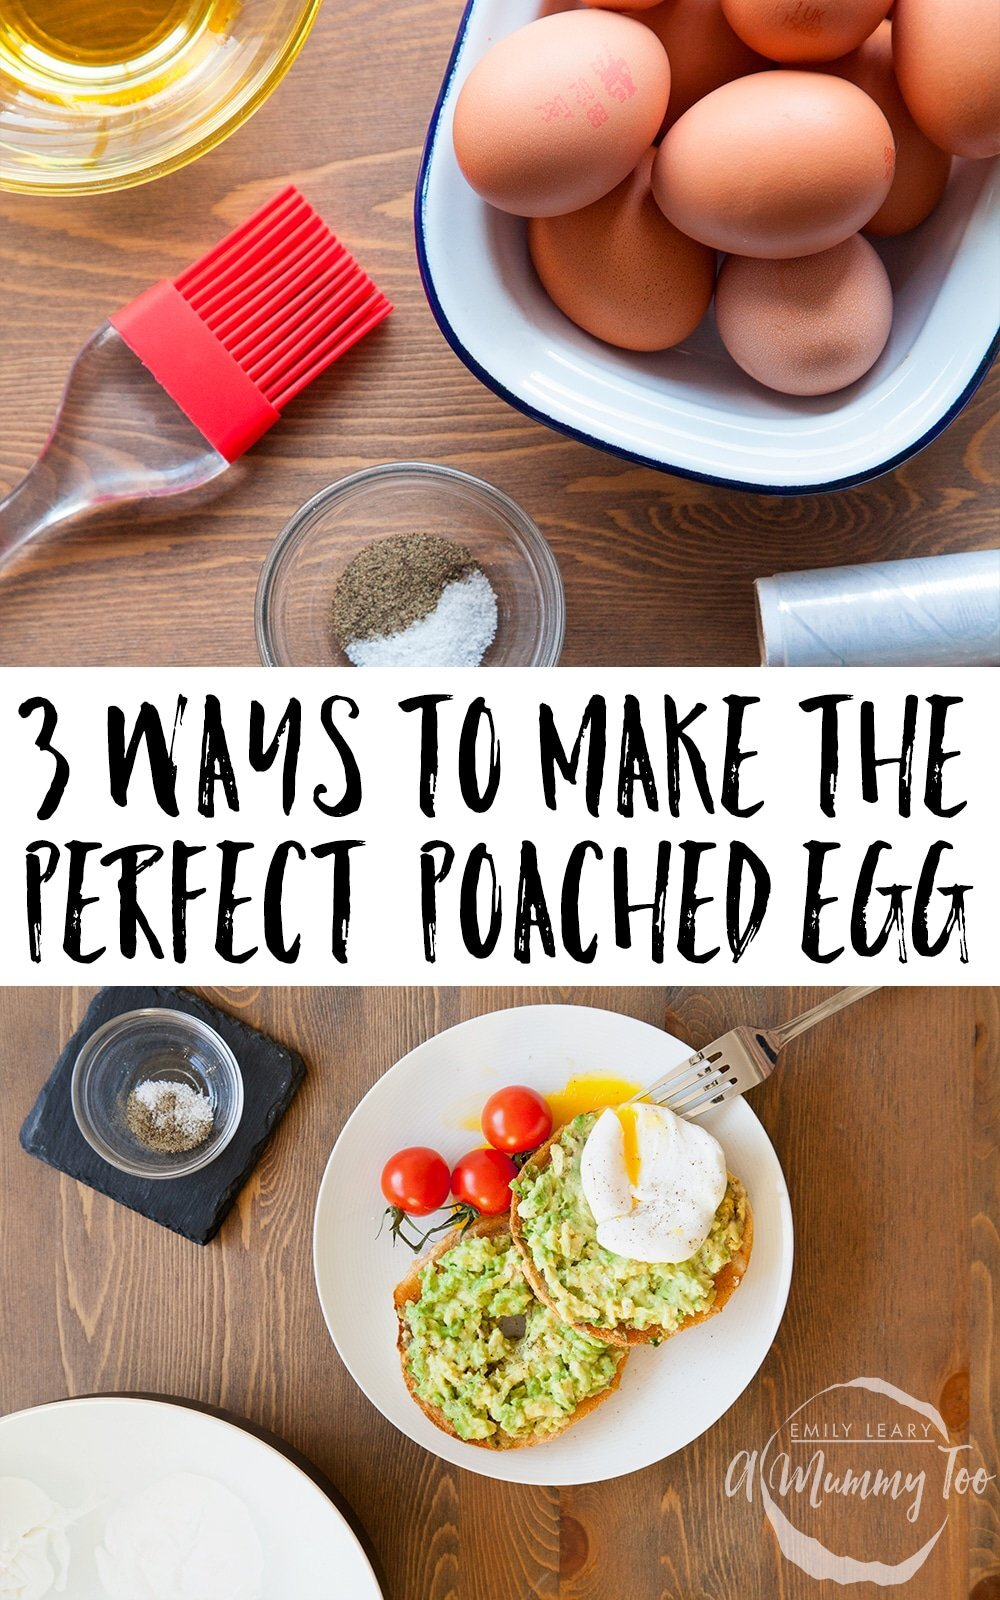 3 ways to poach the perfect egg, every time